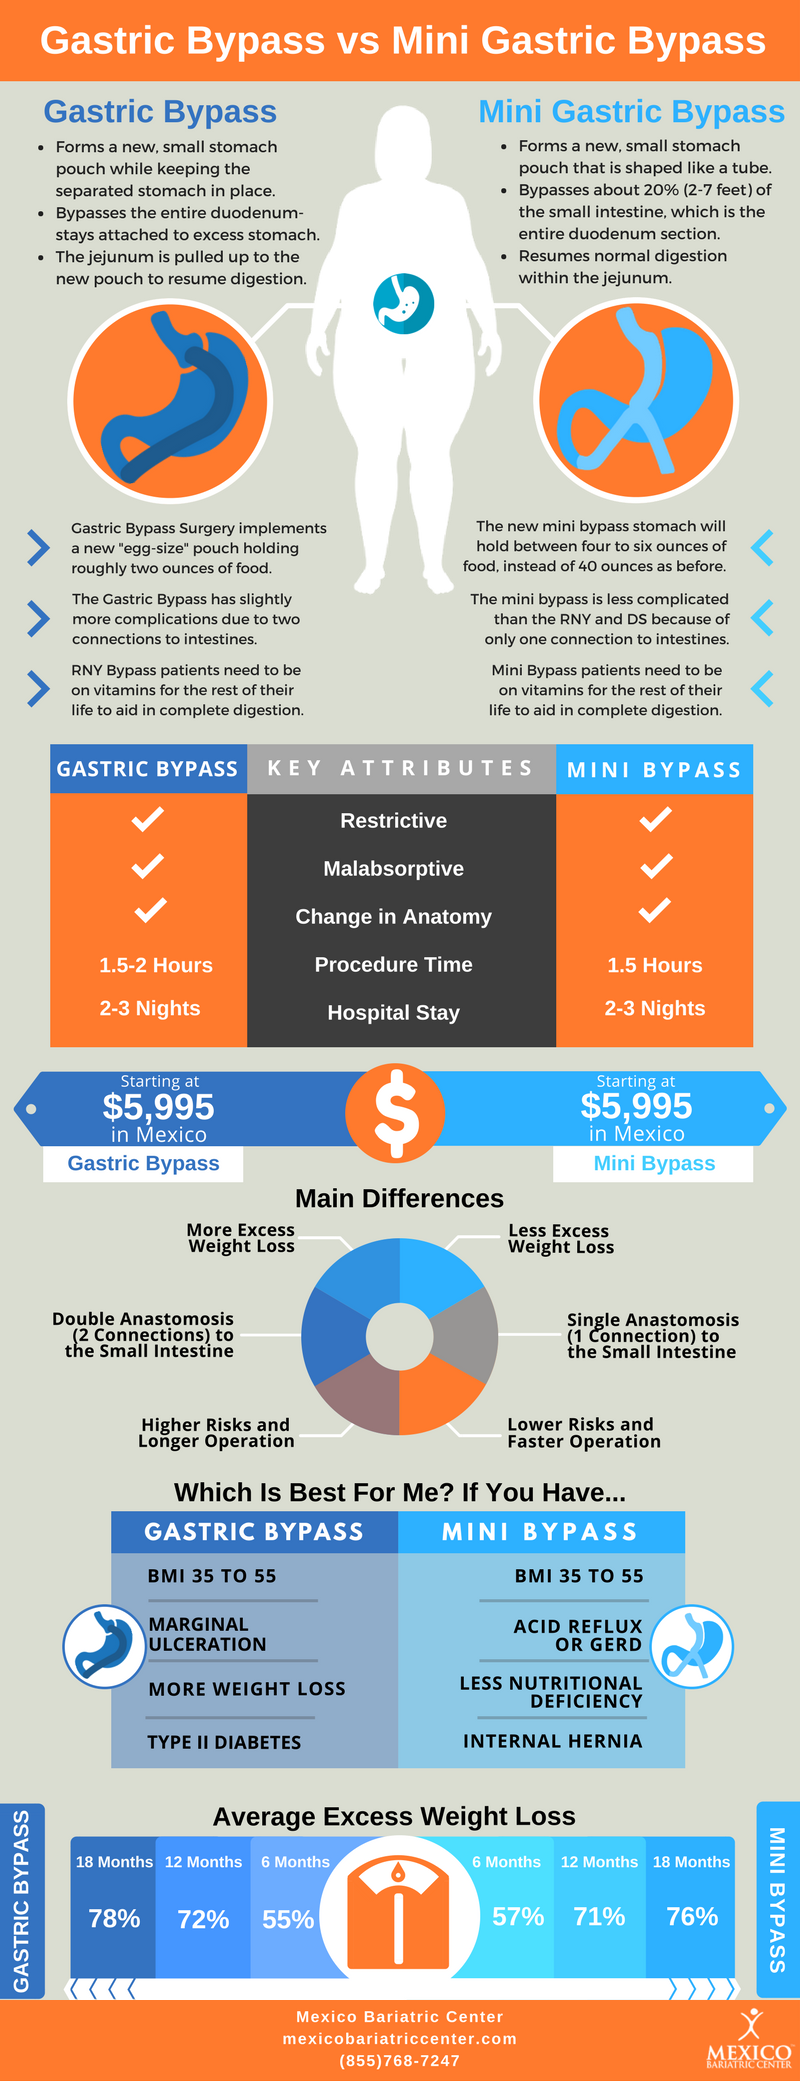 Gastric Bypass Surgery vs Mini Gastric Bypass Surgery Infographic